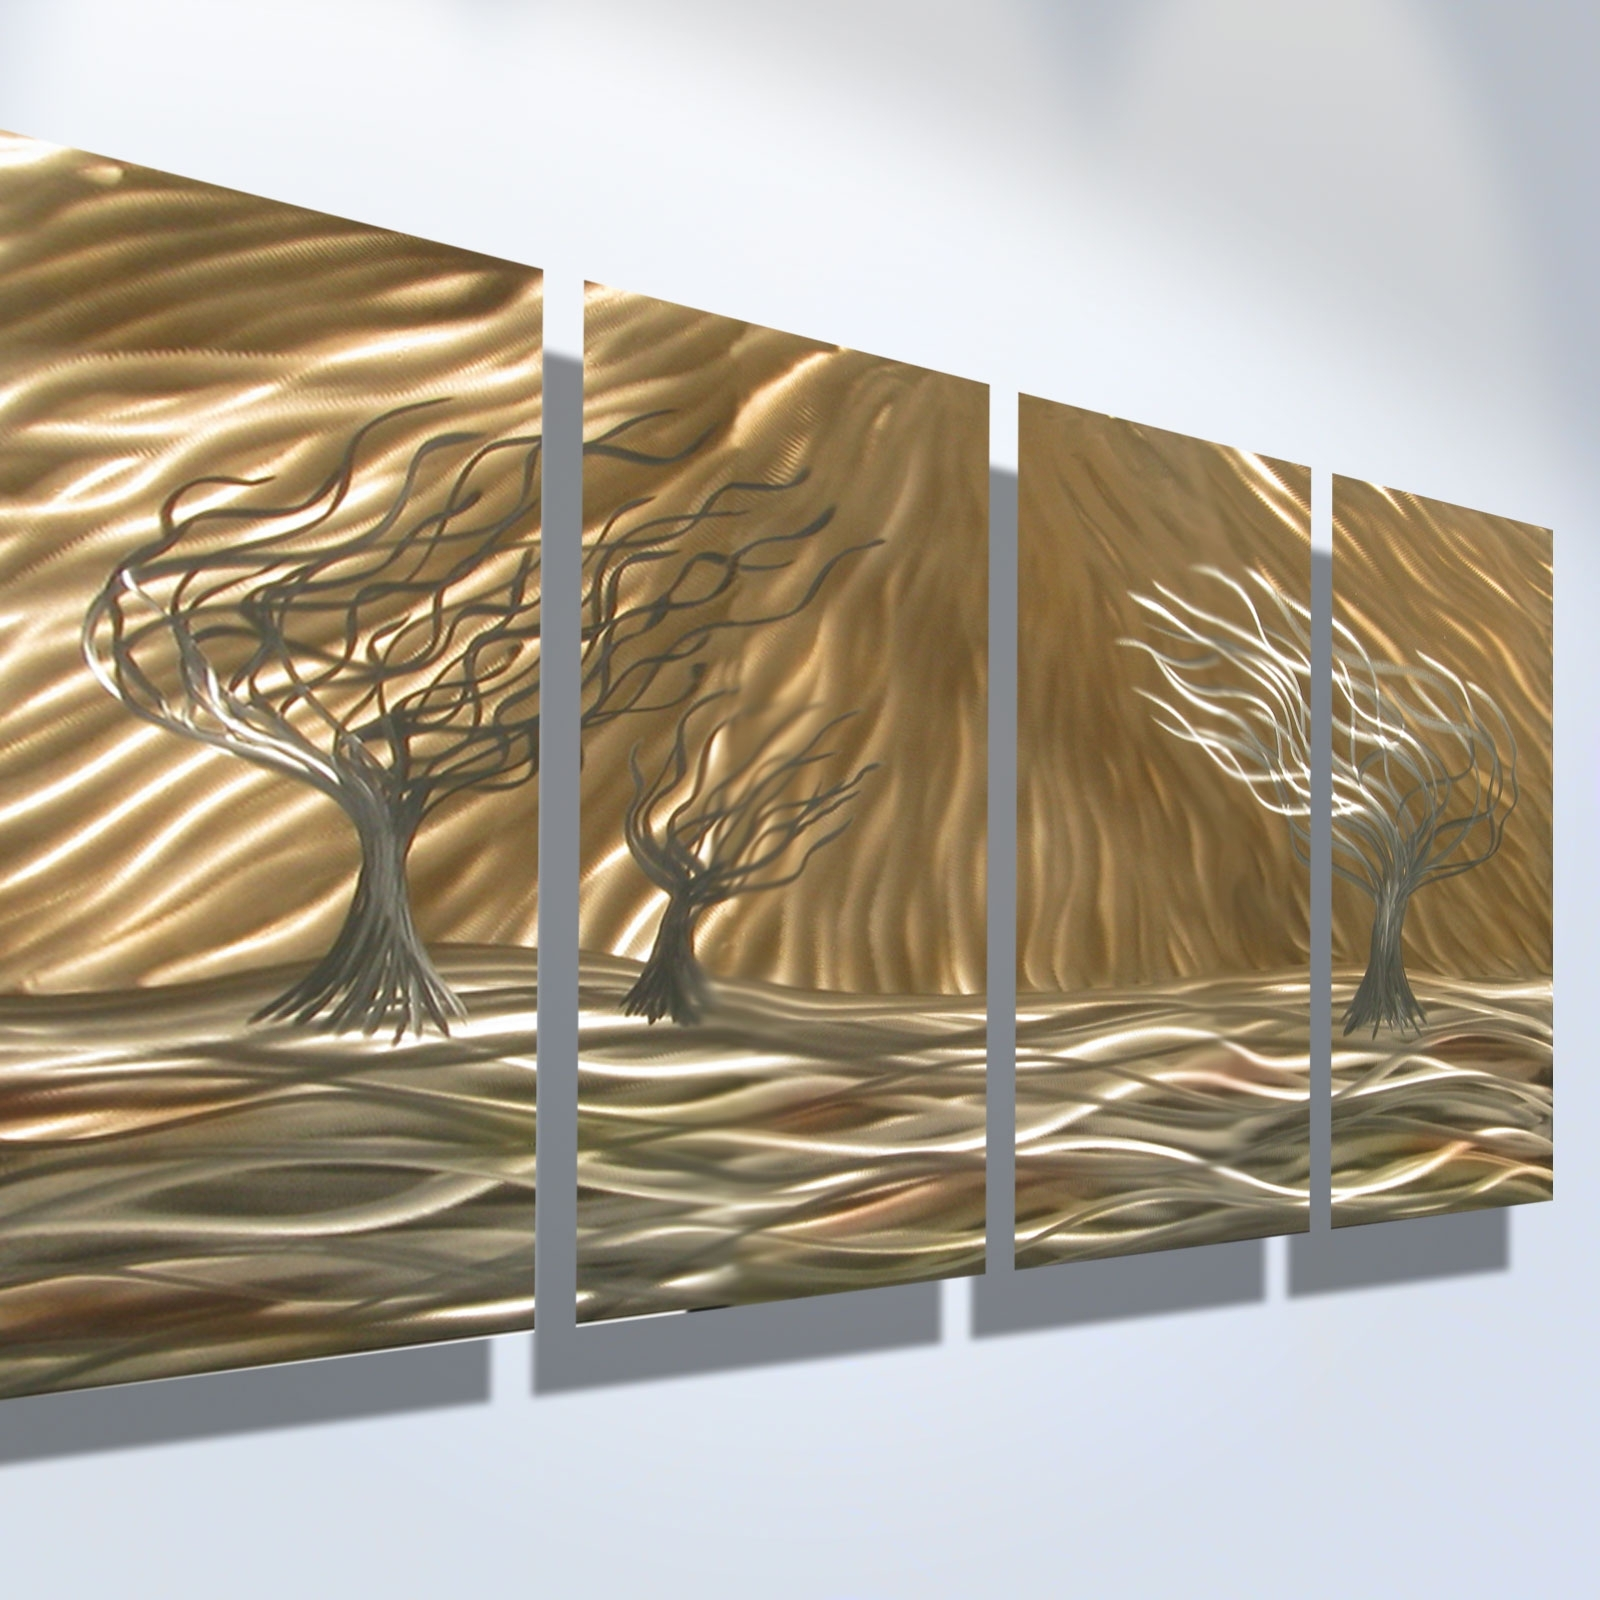 Well Known 3 Trees 4 Panel – Abstract Metal Wall Art Contemporary Modern Inside Abstract Metal Wall Art Panels (View 2 of 15)